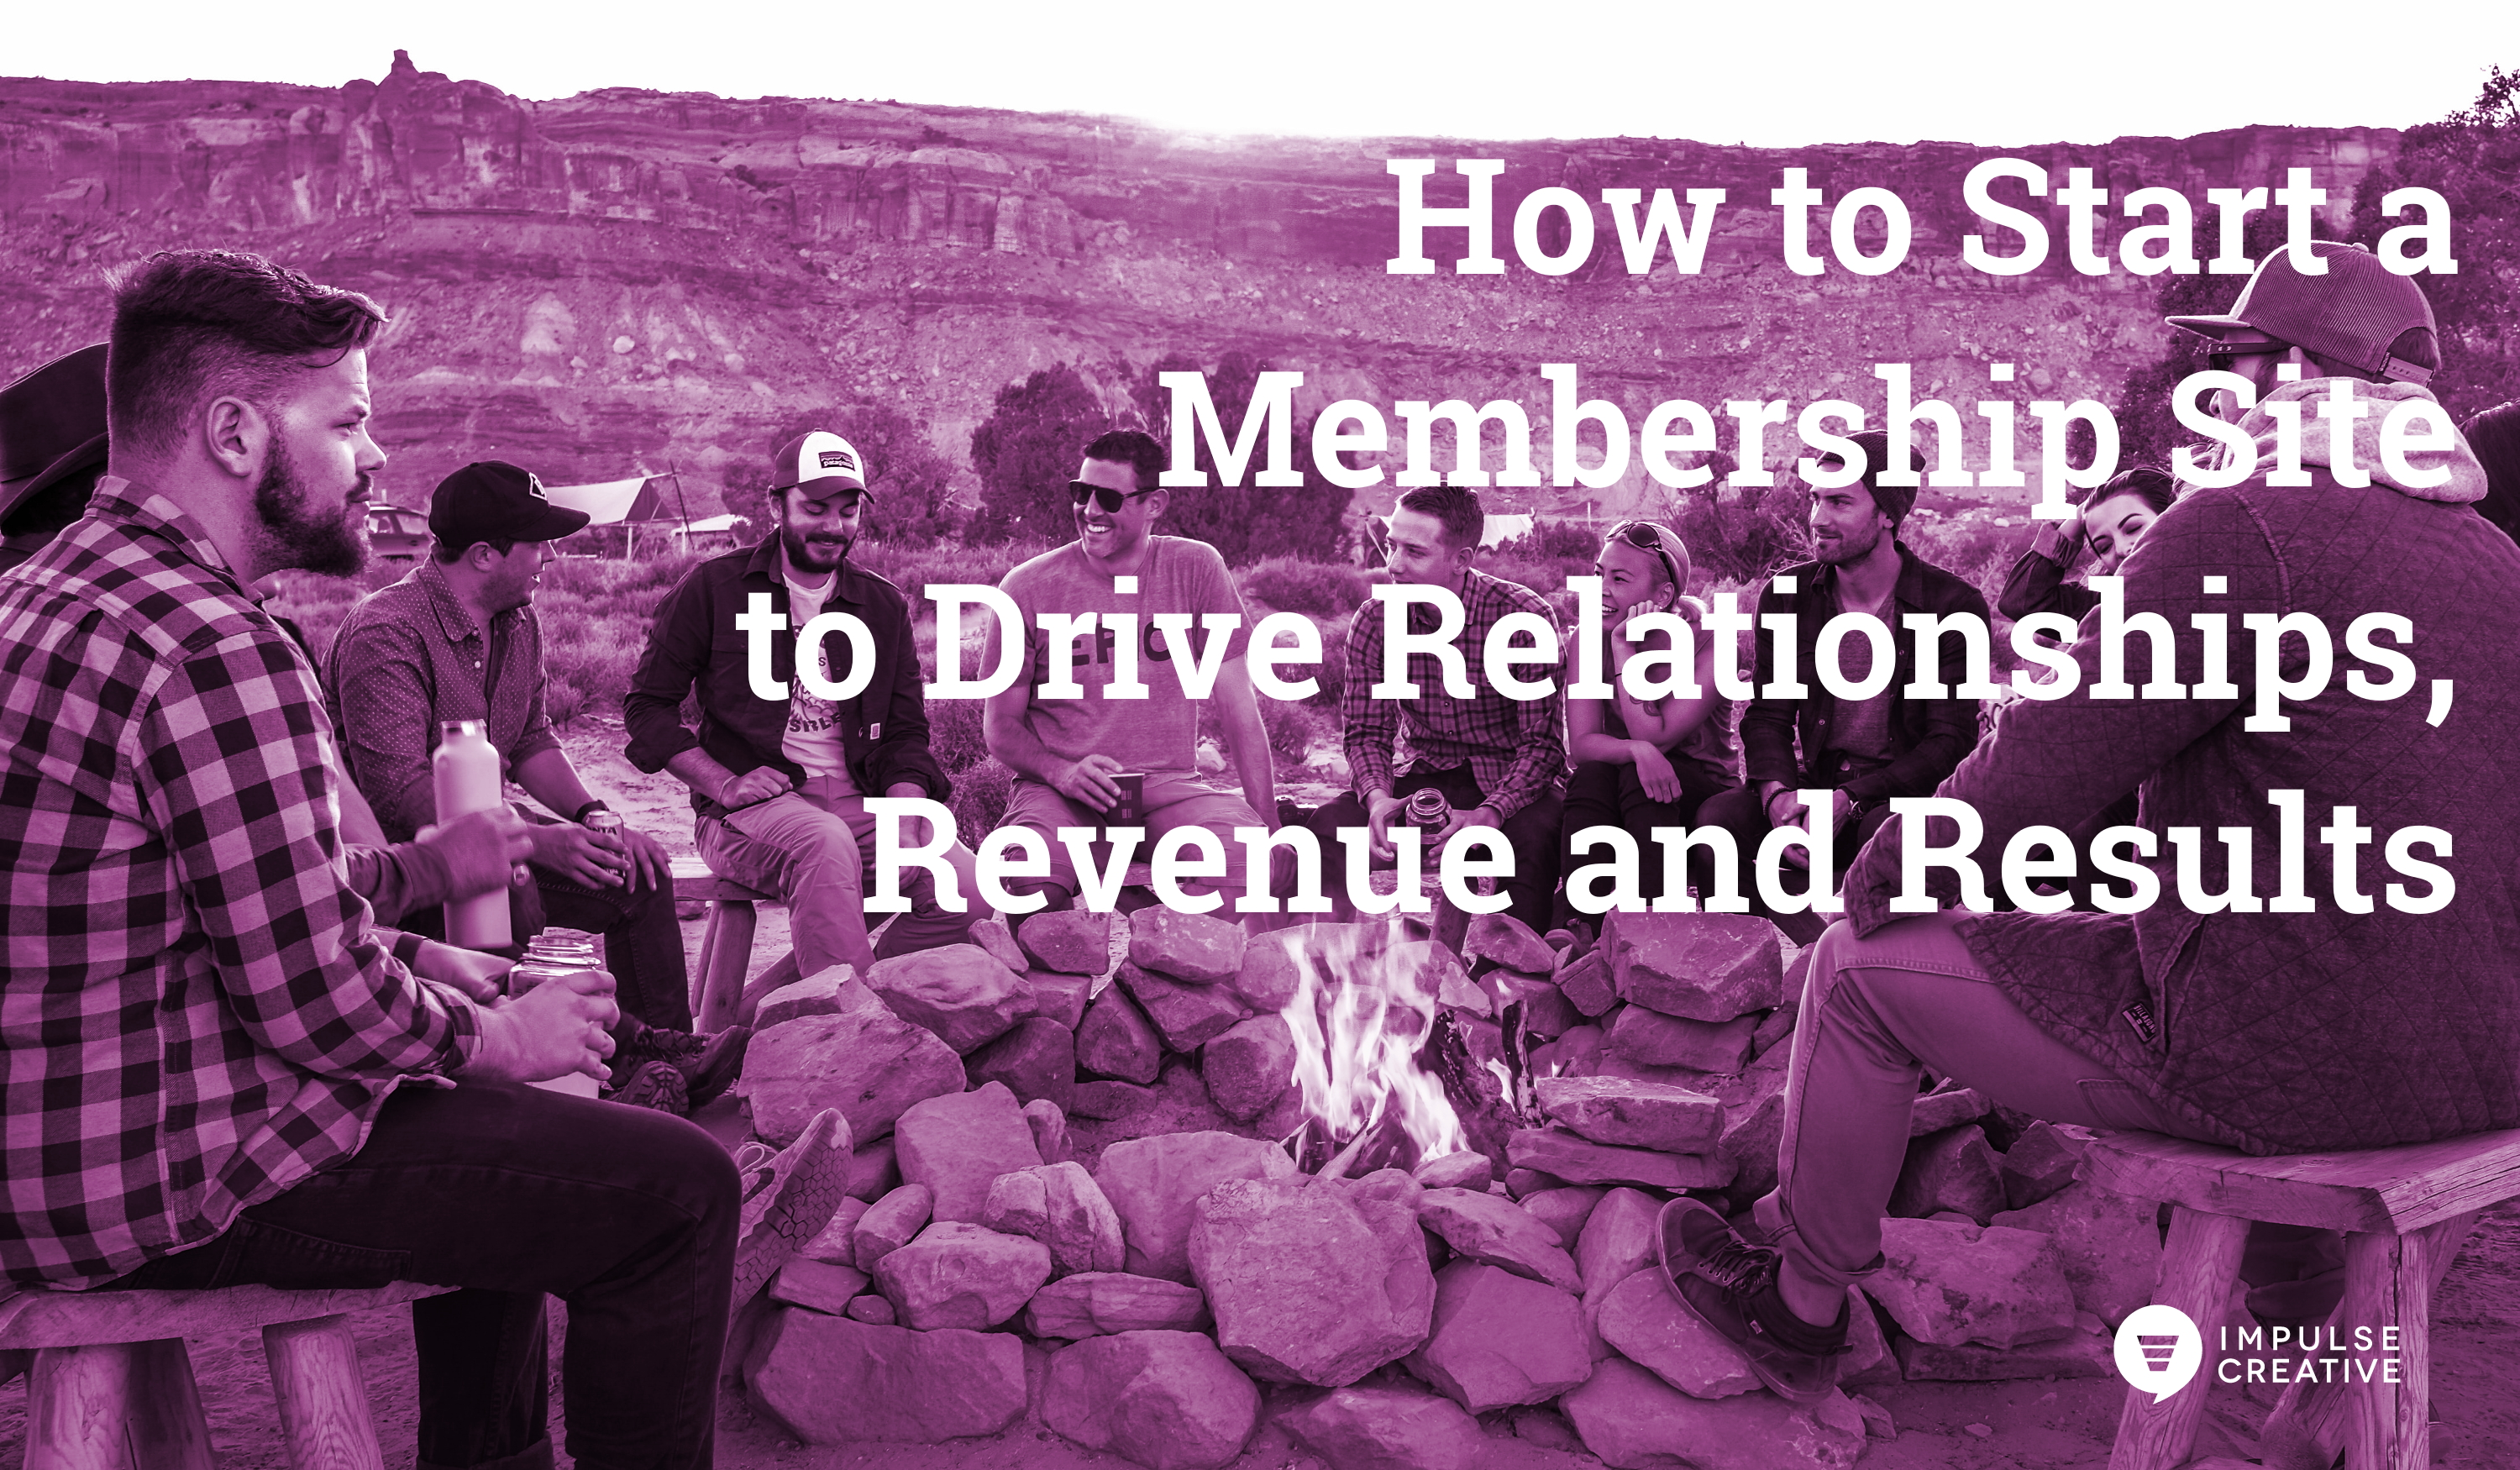 How to Start a Membership Site to Drive Relationships, Revenue, Results